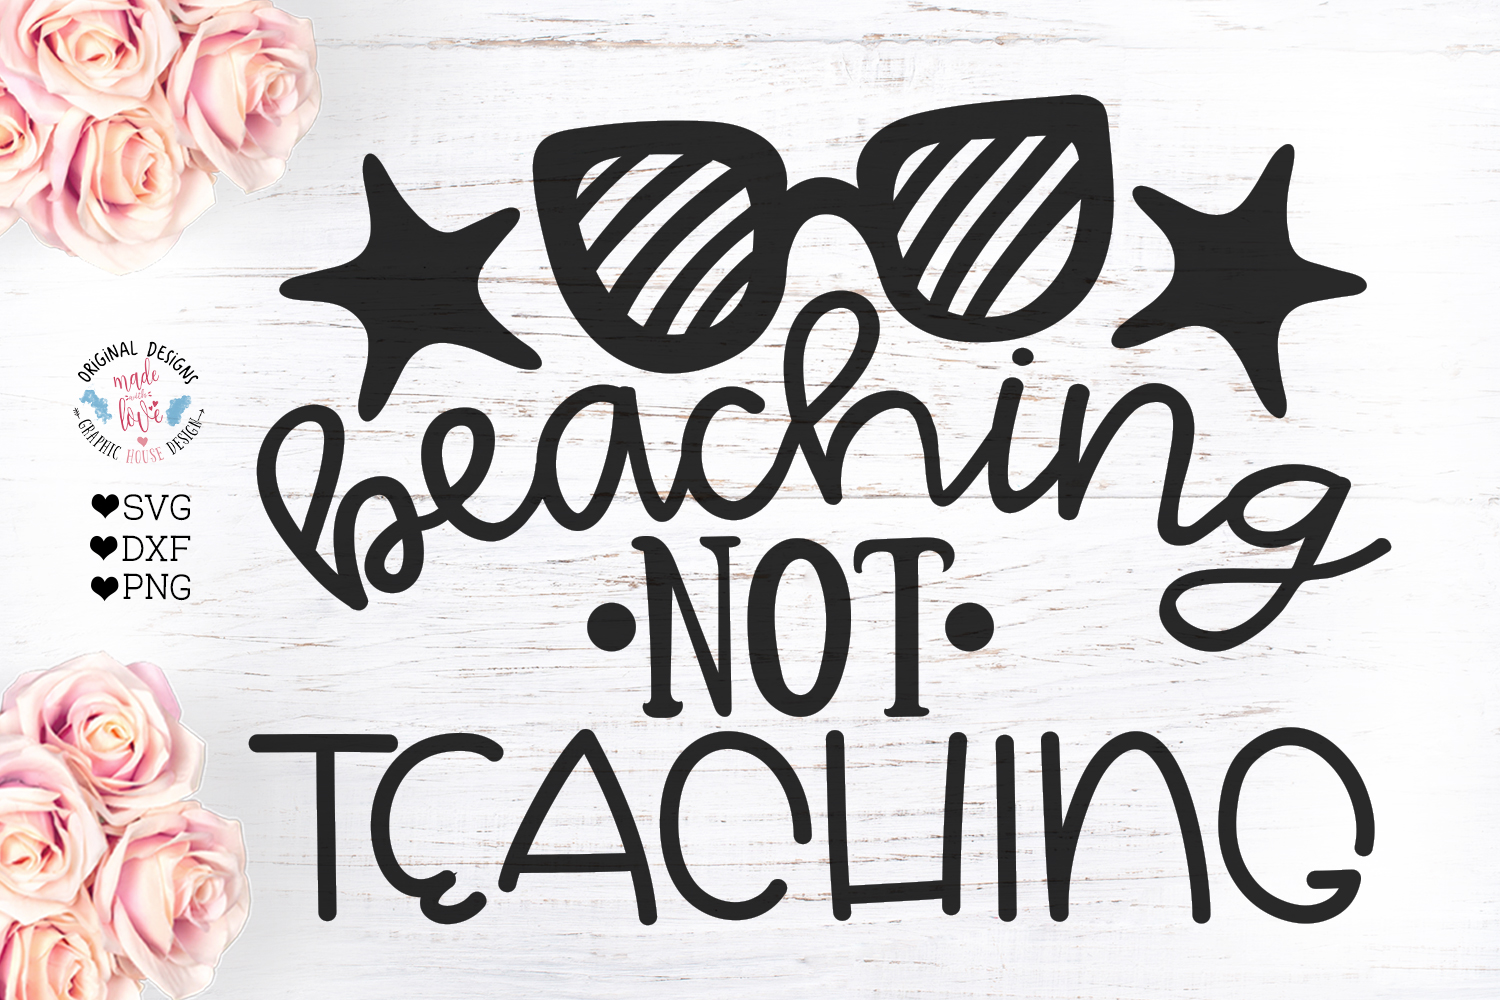 Beaching Not Teaching- Teacher Cut File example image 2